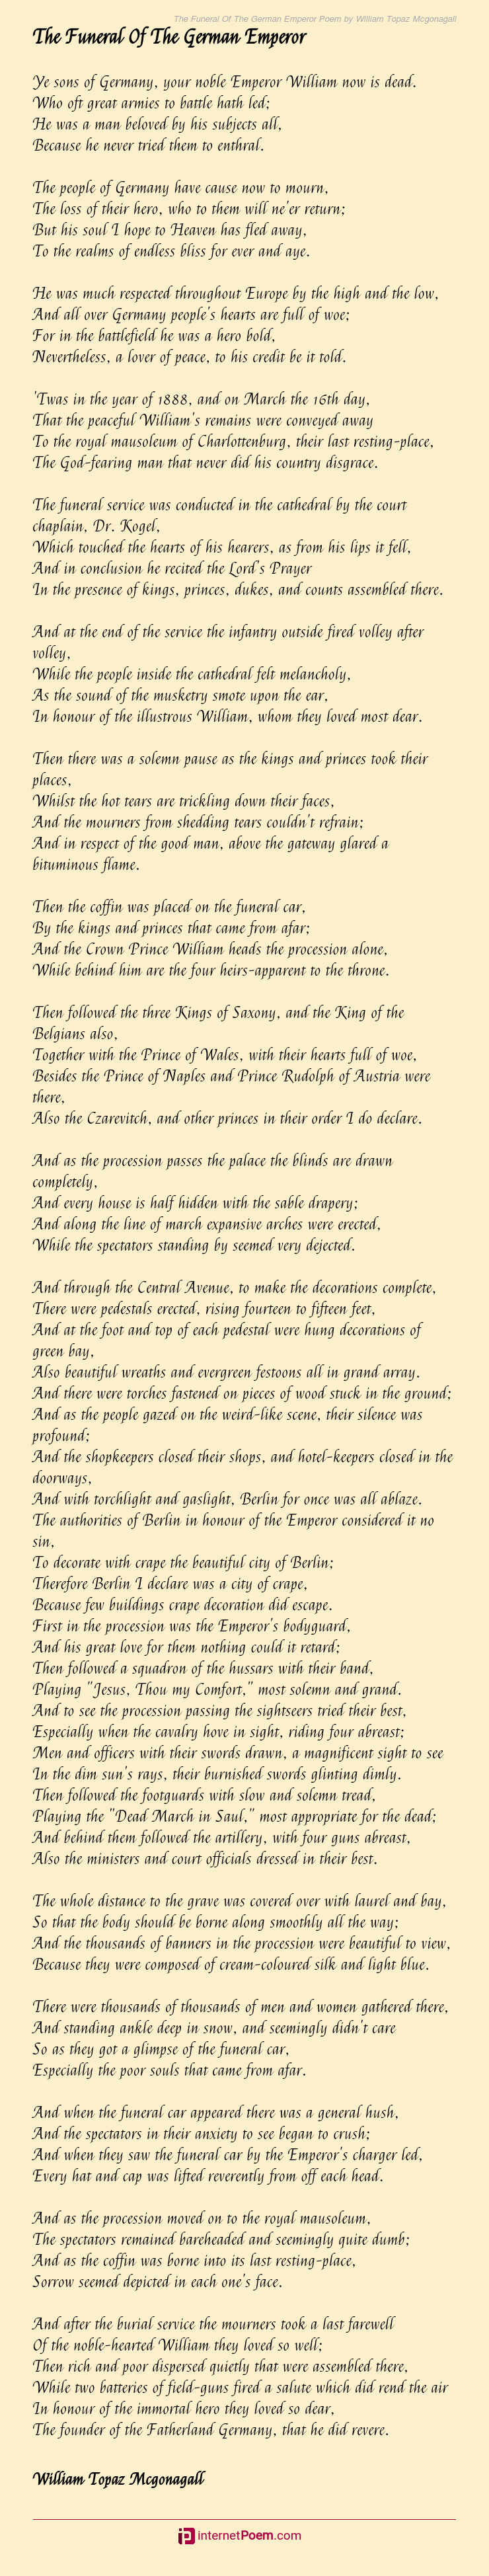 The Funeral Of The German Emperor Poem By William Topaz